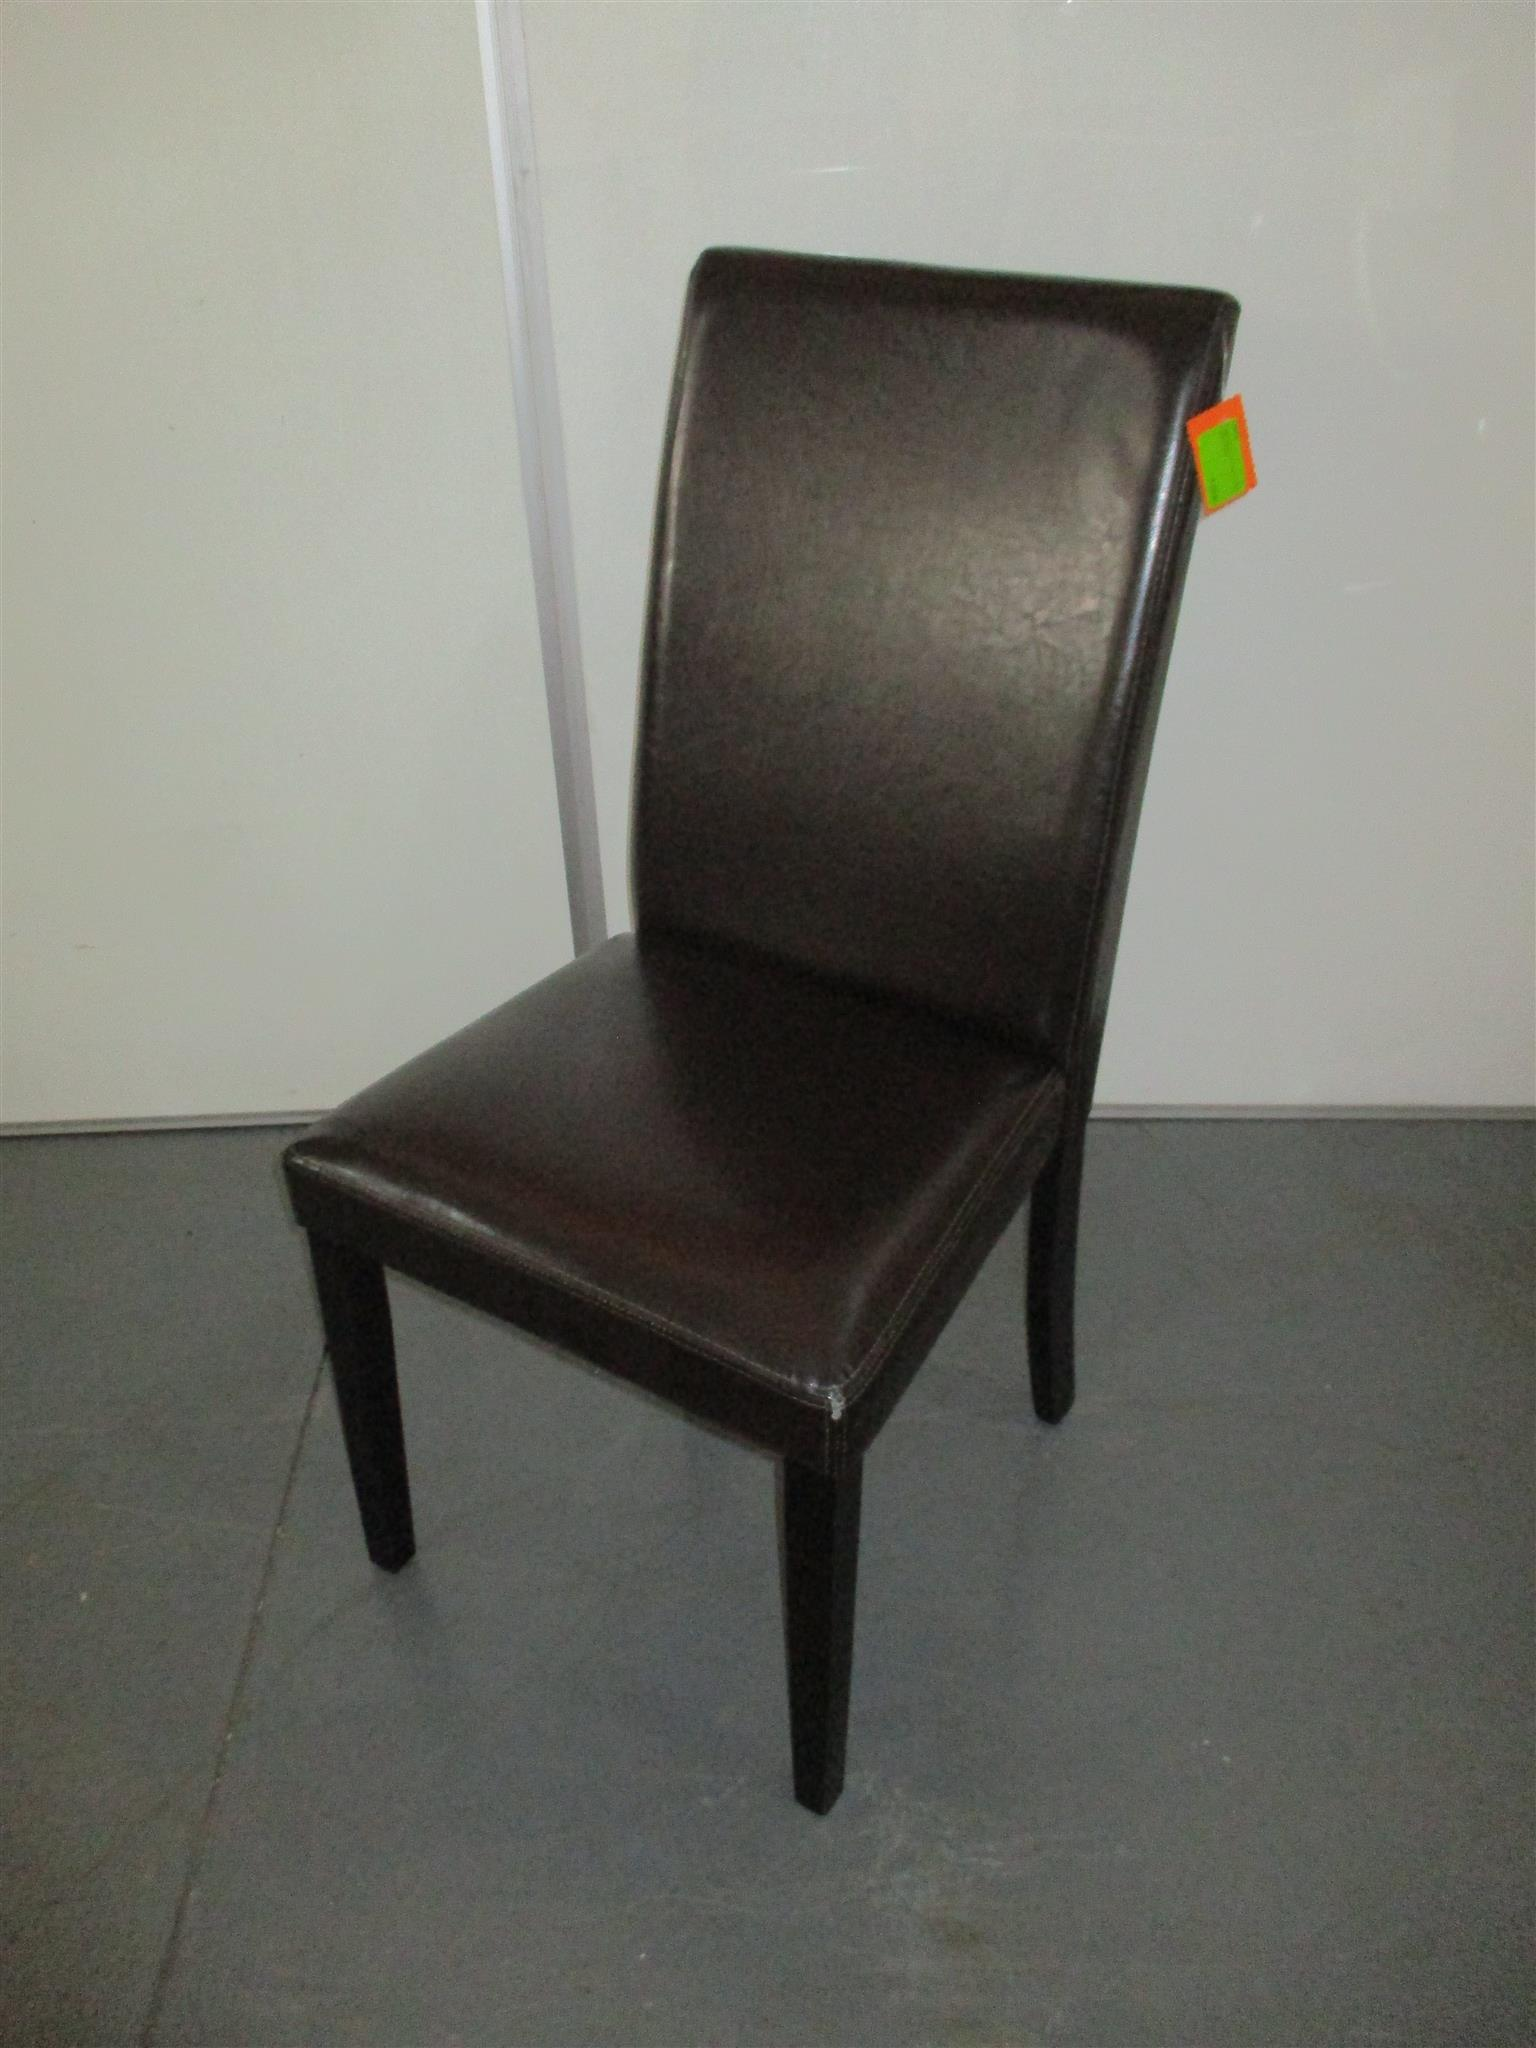 Leather dark brown visitor chair no arms